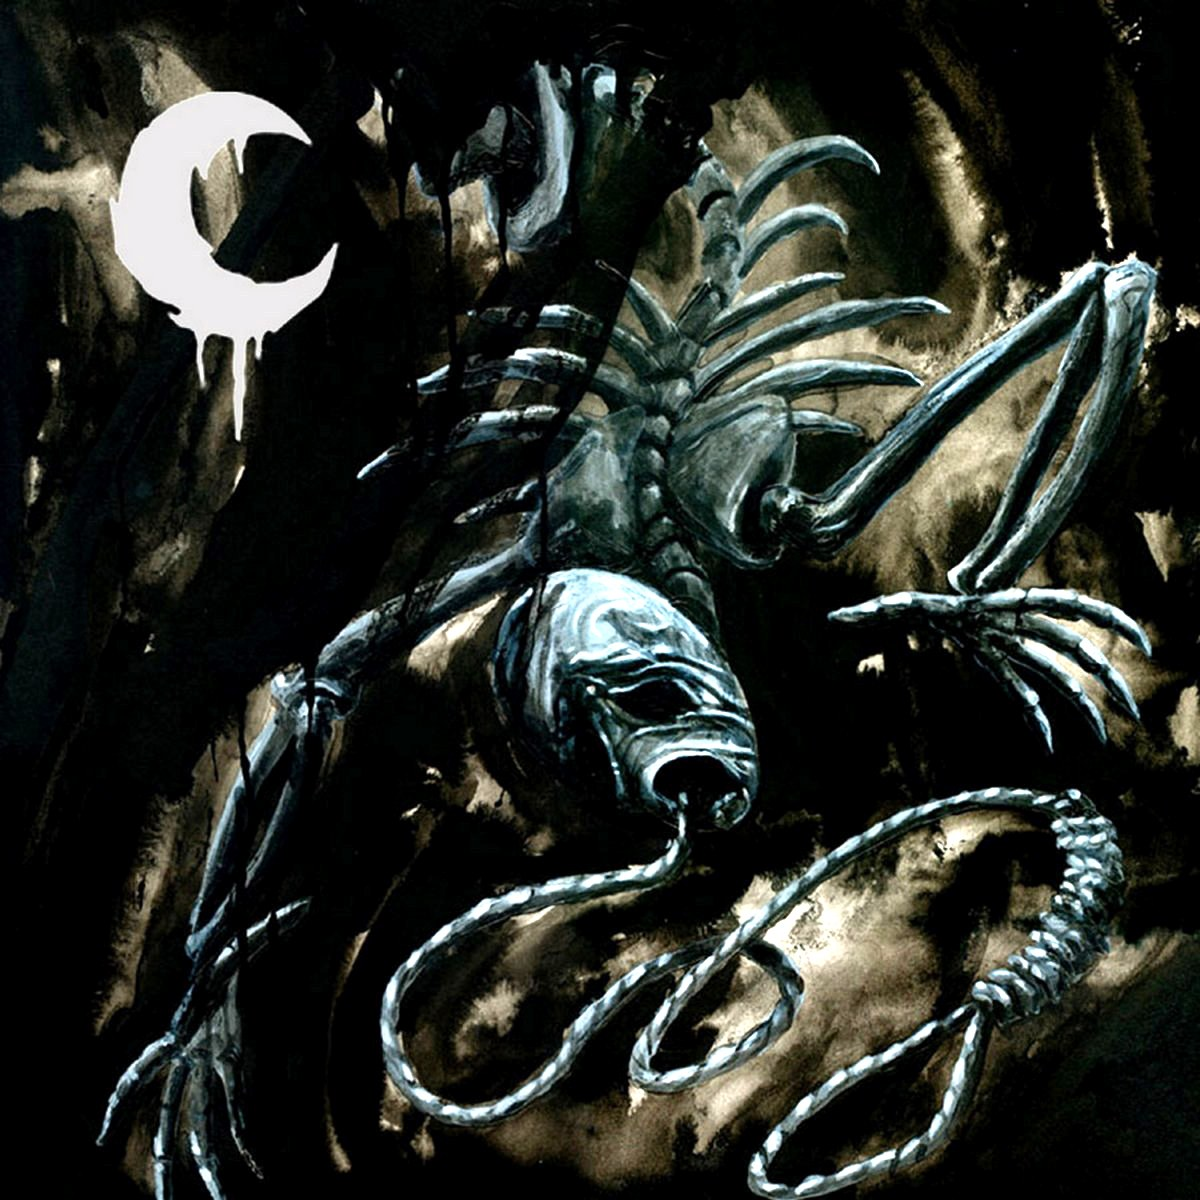 Review for Leviathan (USA) - A Silhouette in Splinters